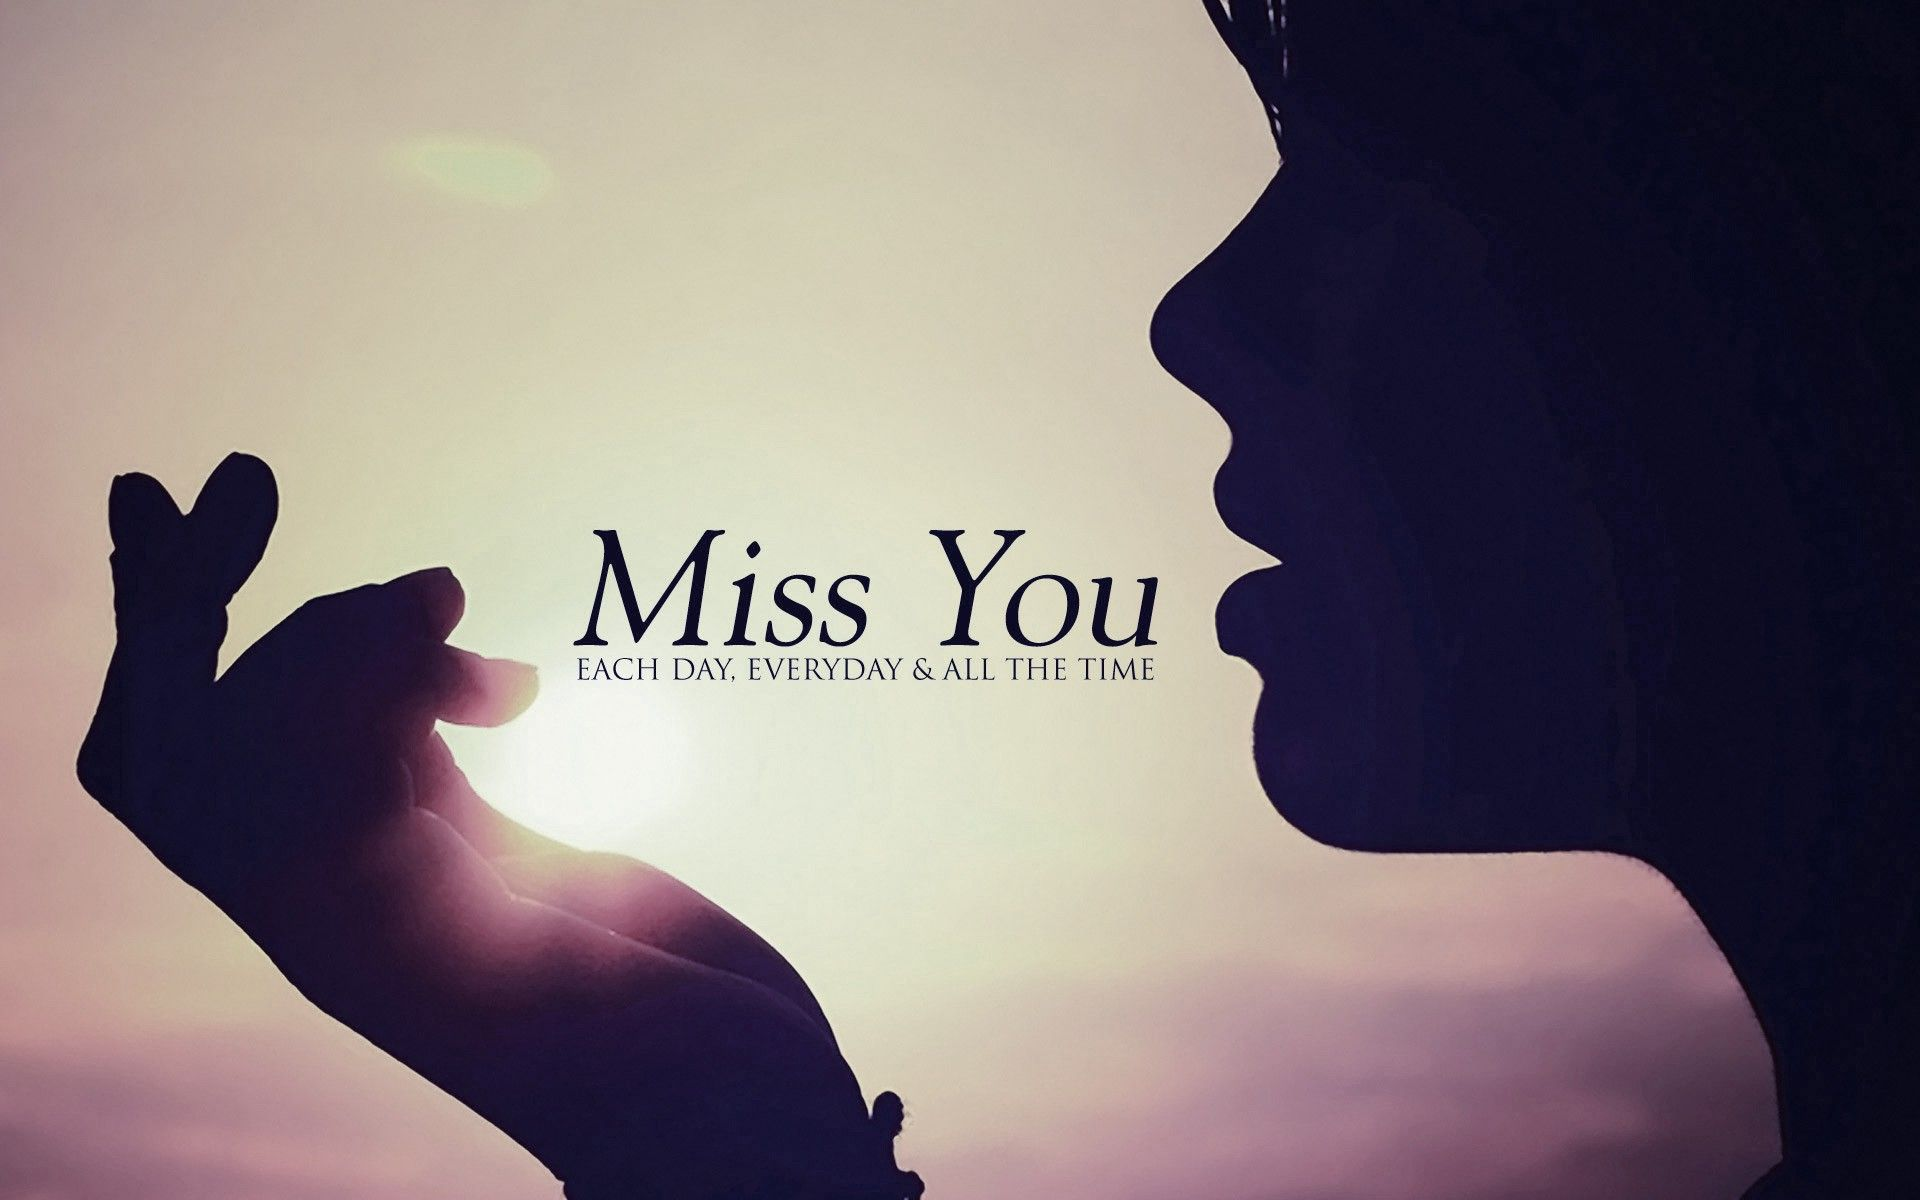 Miss You Sad Wallpaper with quotes sayings I Miss You